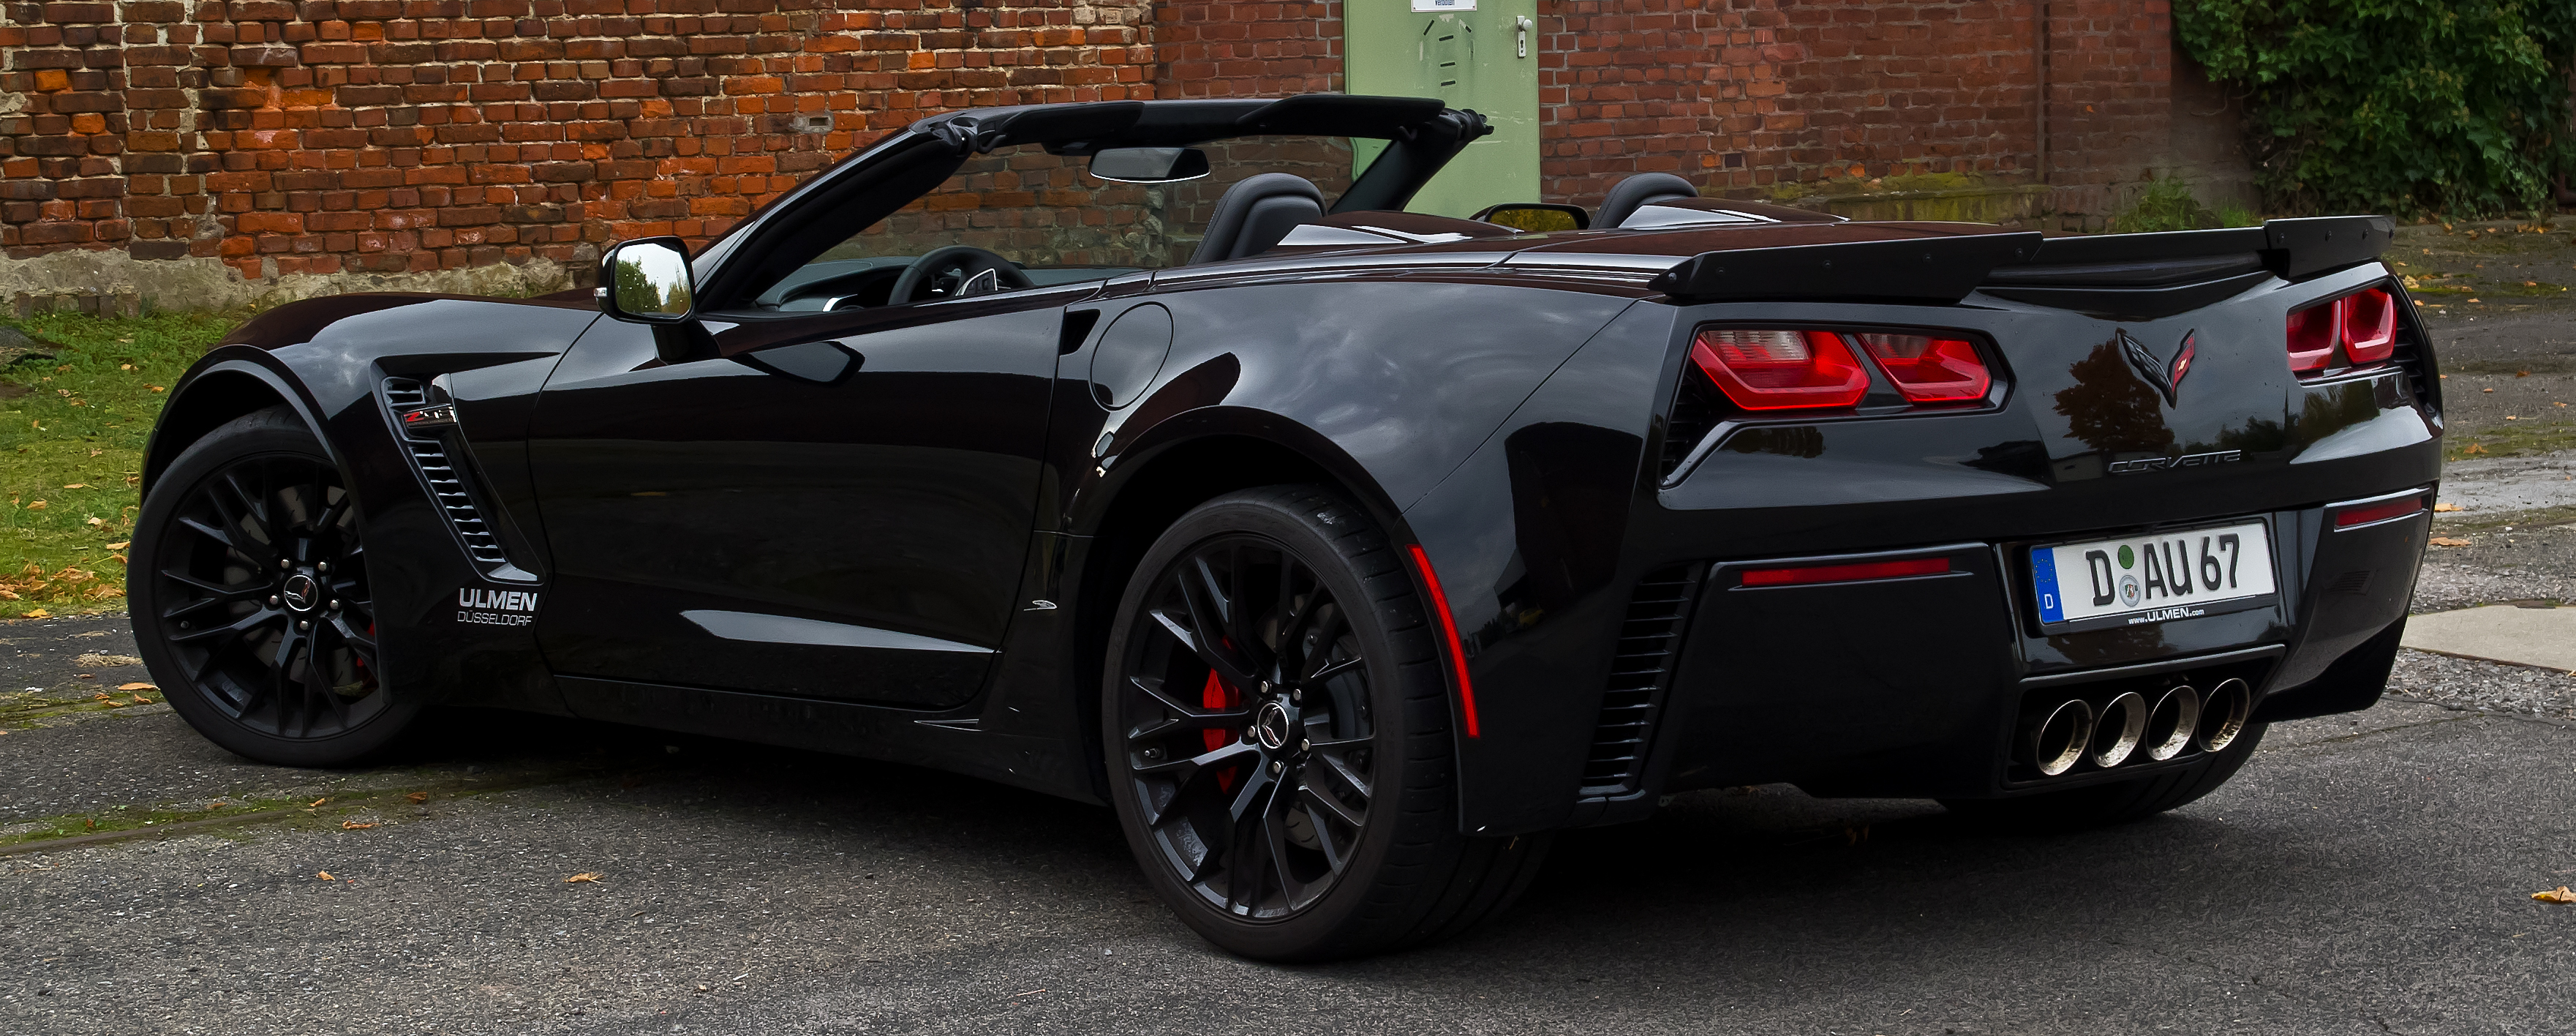 file corvette z06 cabriolet c7 heckansicht ge ffnet 28 oktober 2015 d. Black Bedroom Furniture Sets. Home Design Ideas